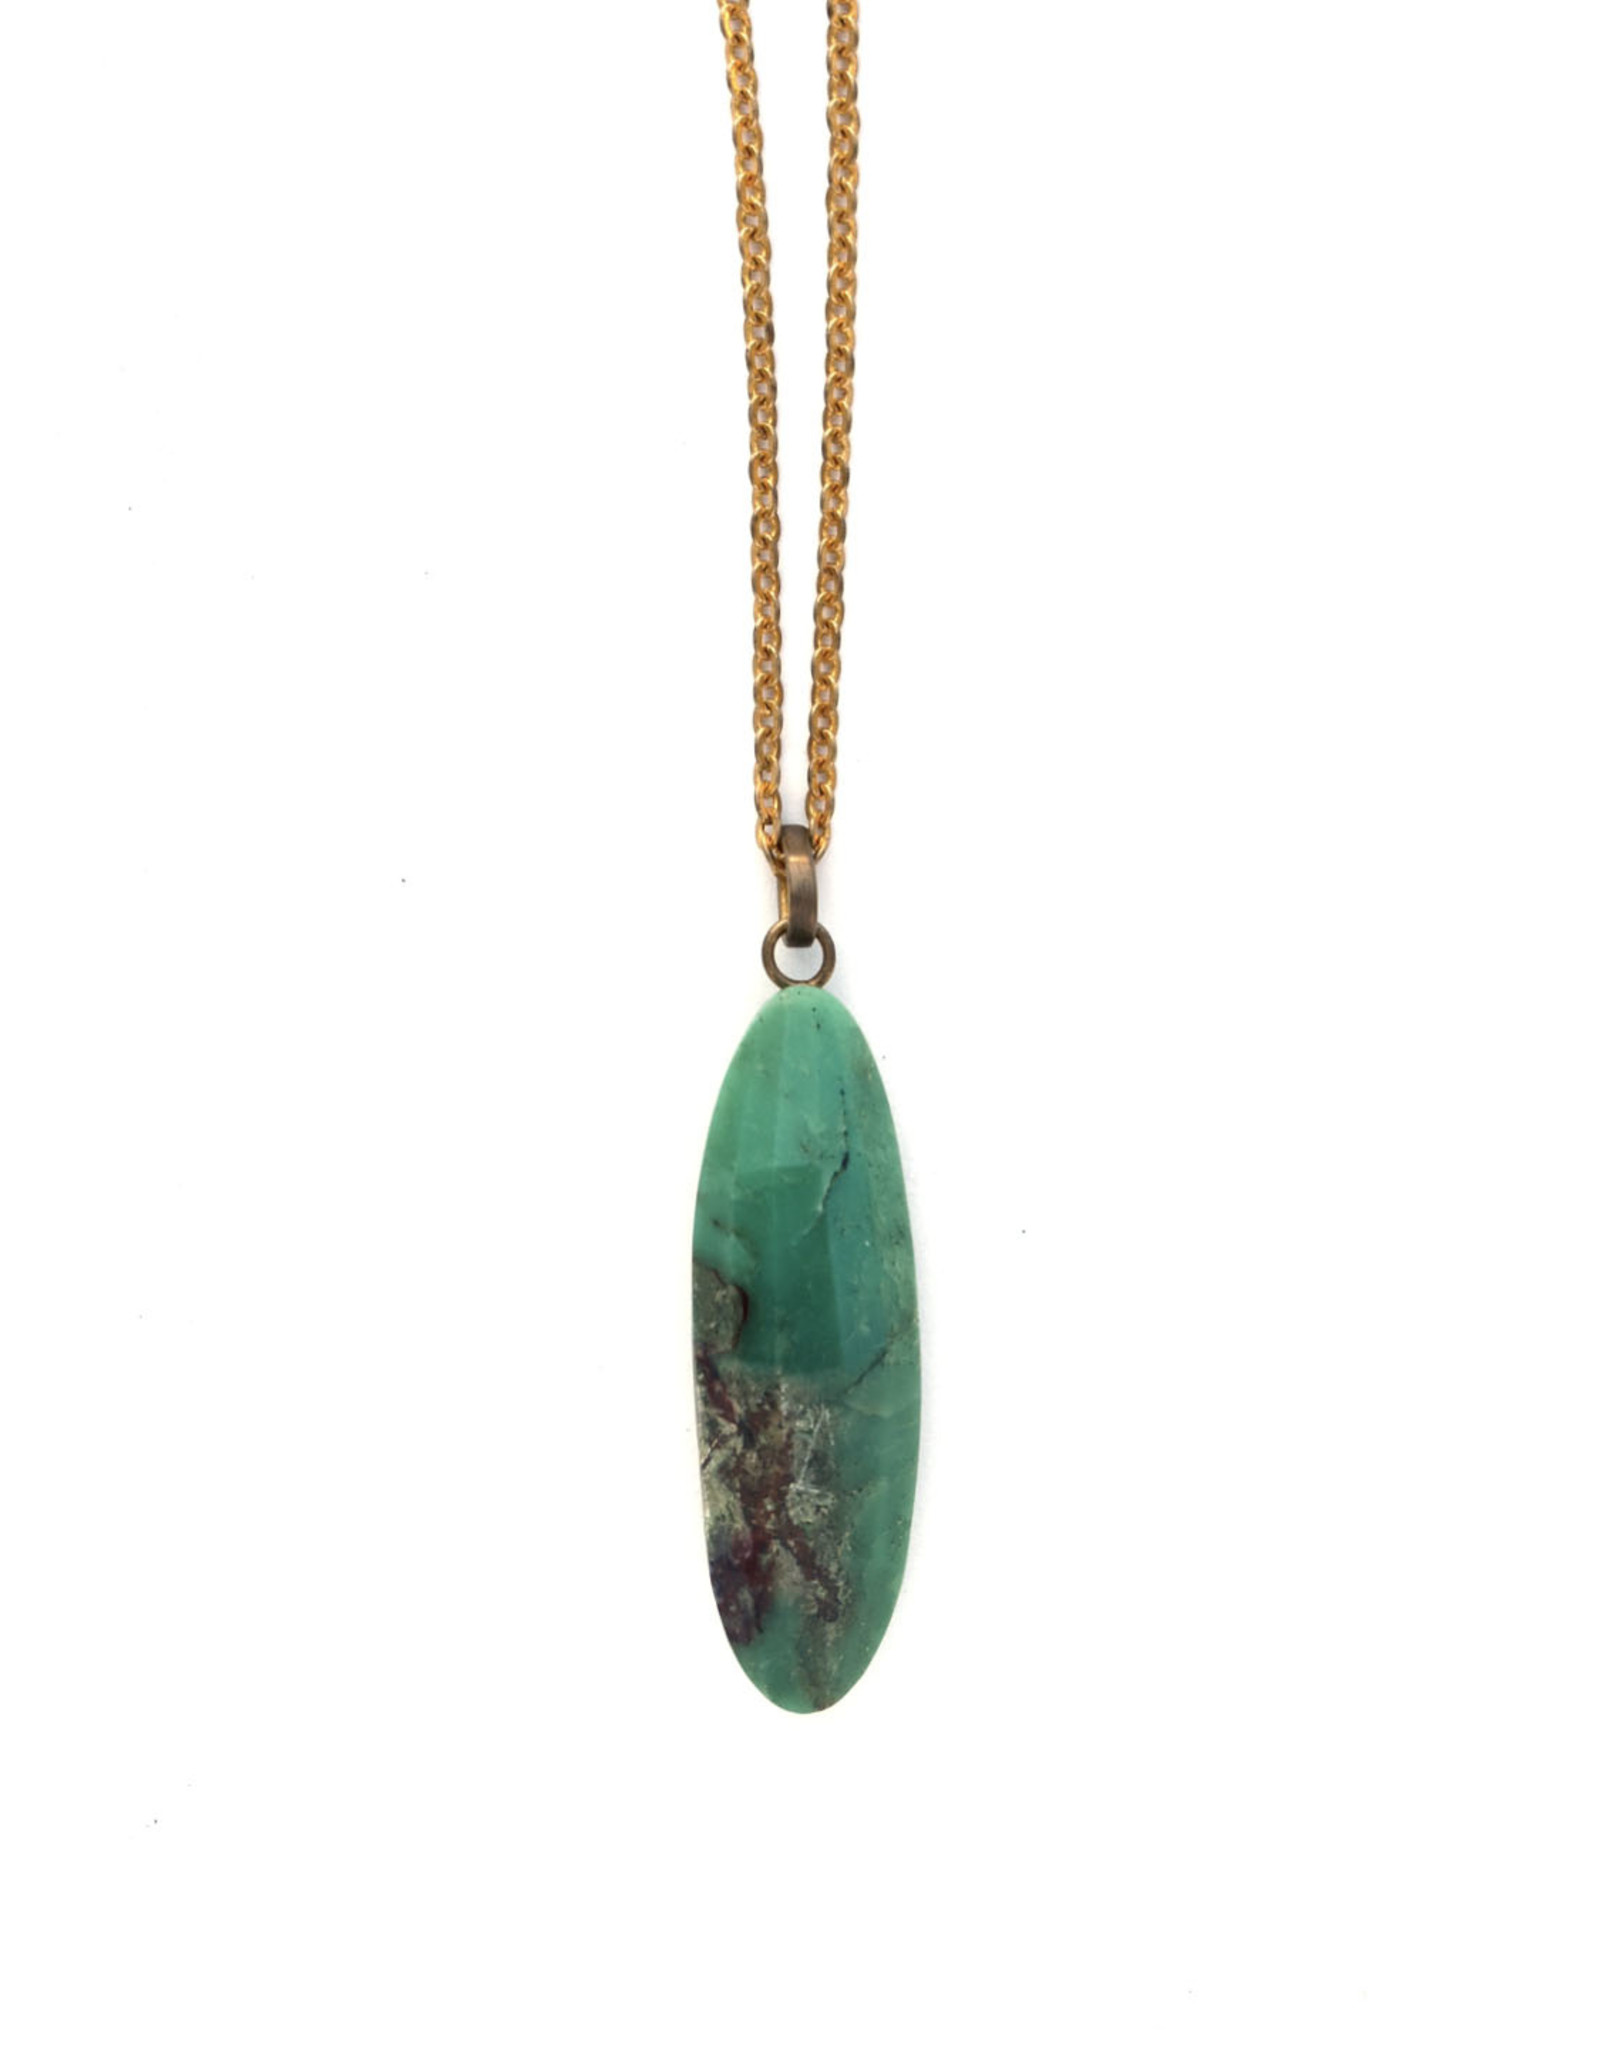 Tara Chrysoprase Pendant Necklace